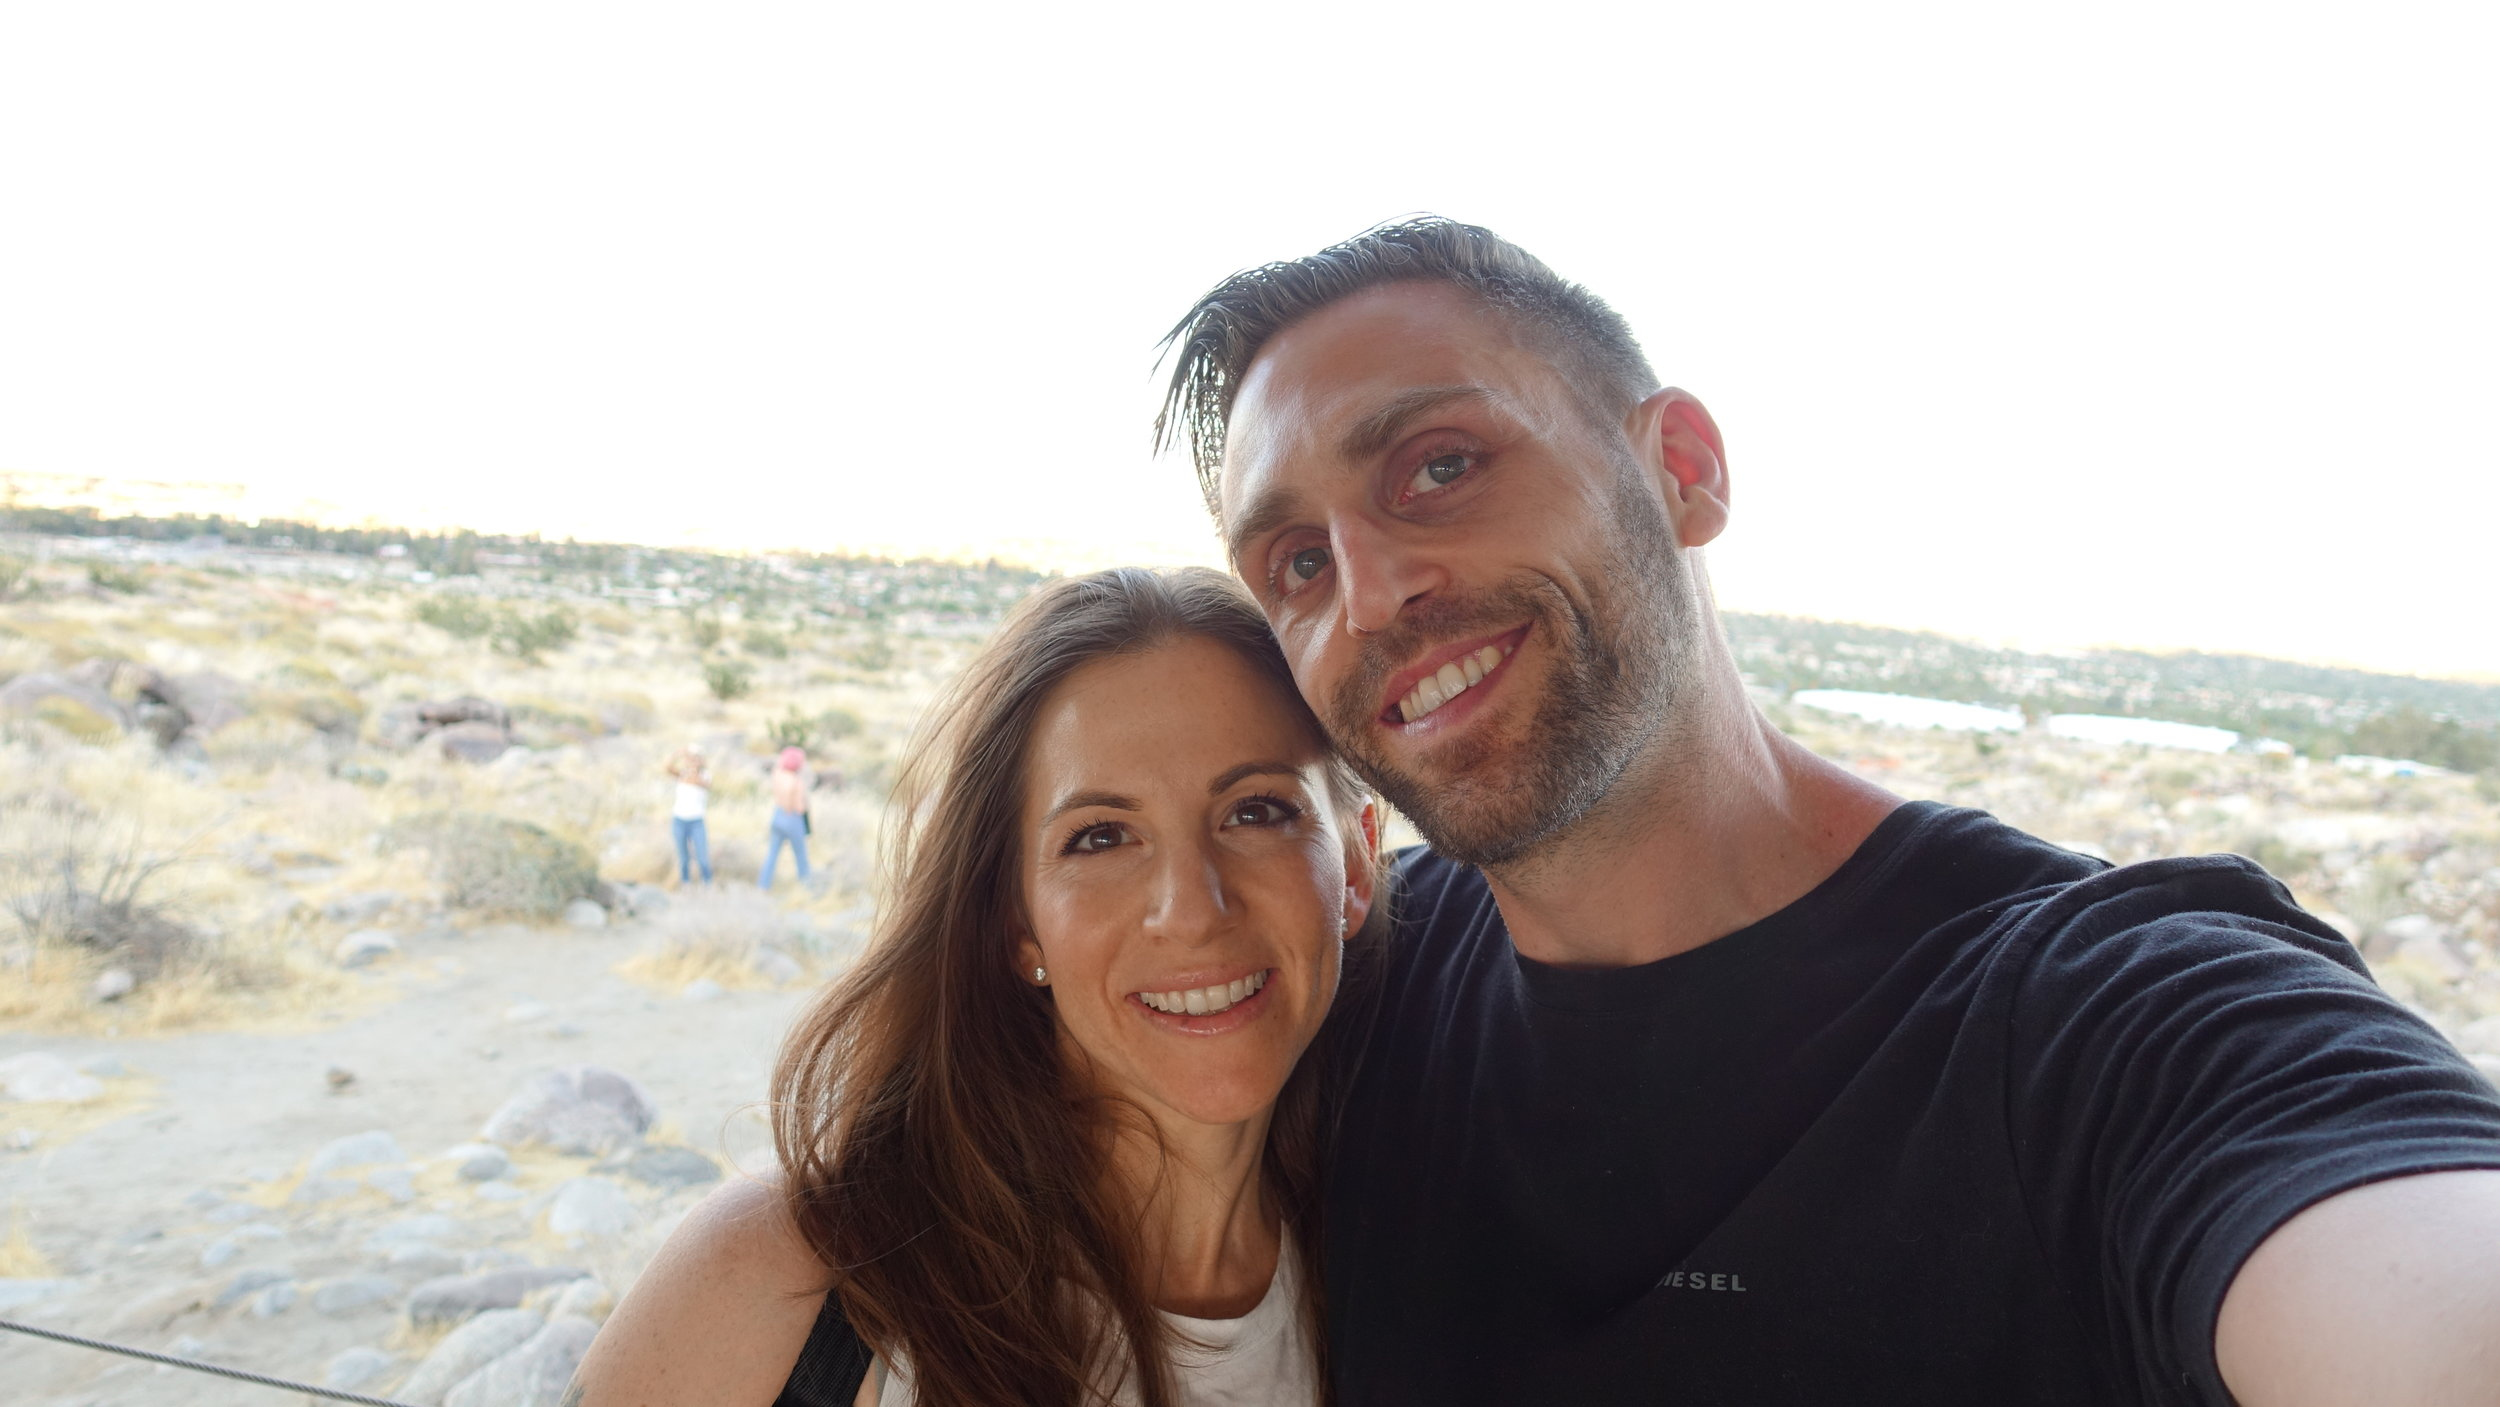 My husband Jay and his journey with Crohn's